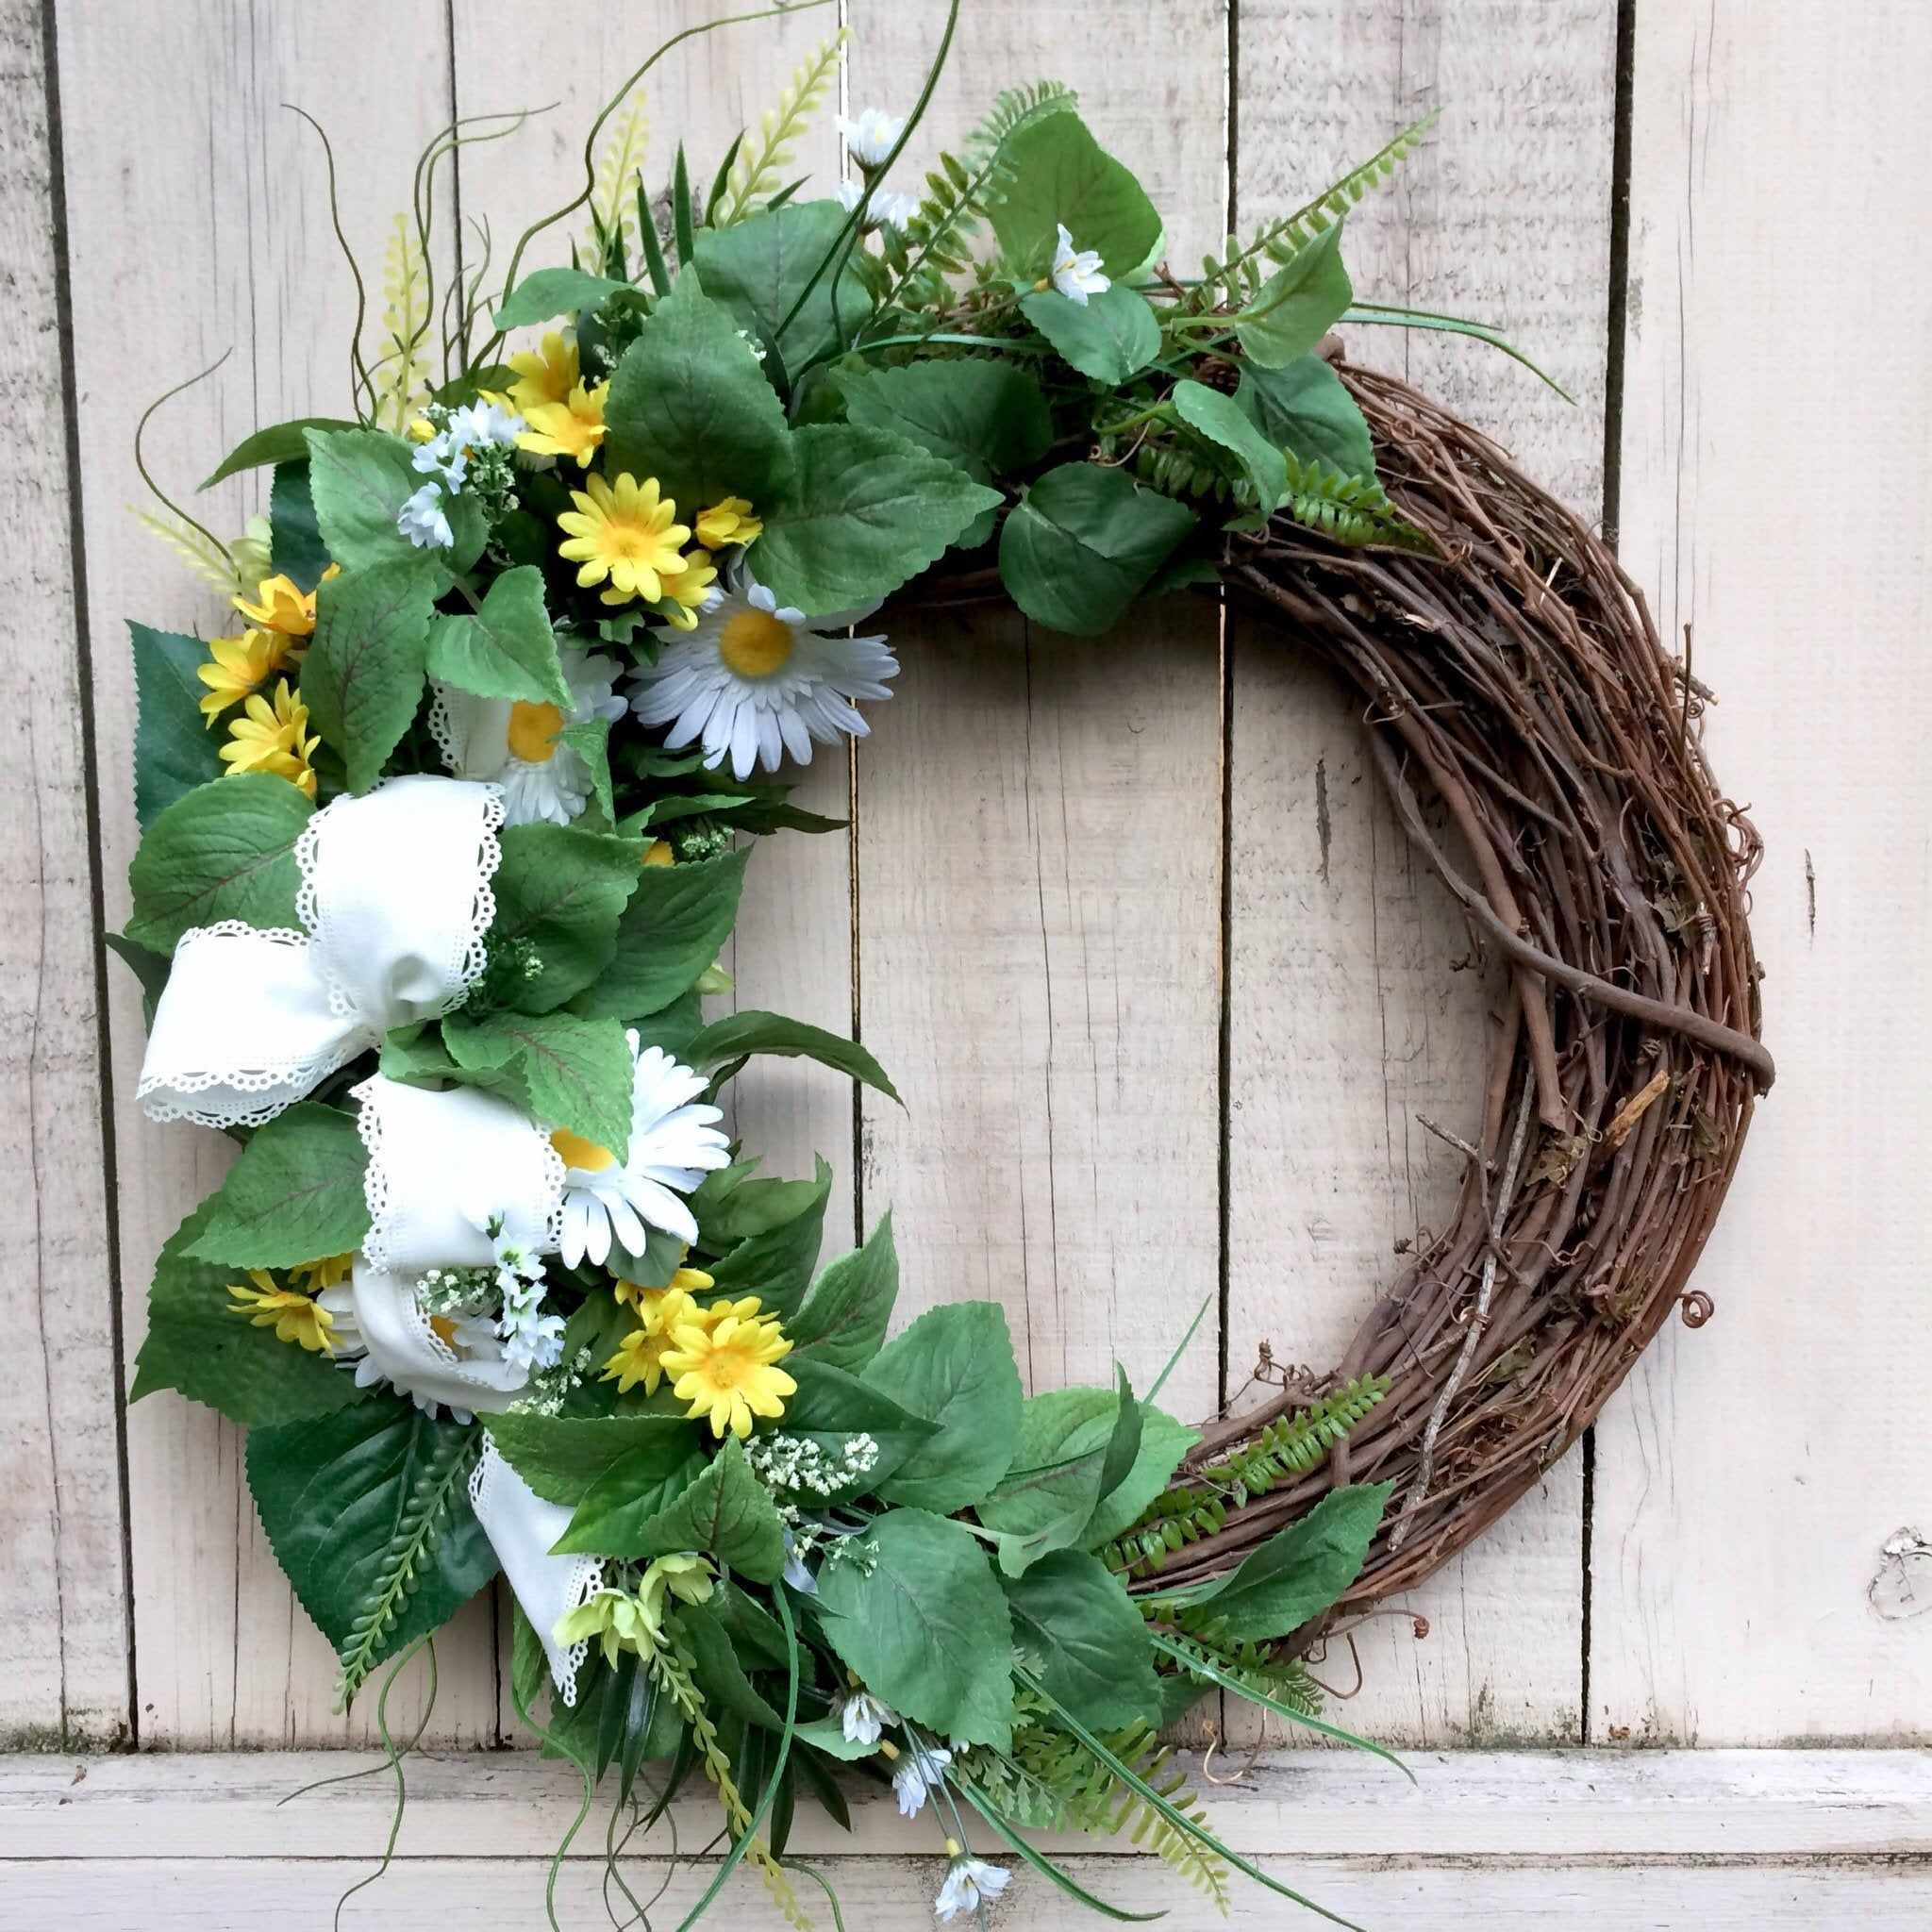 Photo of Spring Wreath, Large Spring Wreath, Spring Grapevine, Grapevine Wreath, Greenery Wreath, White and Yellow Flowers.